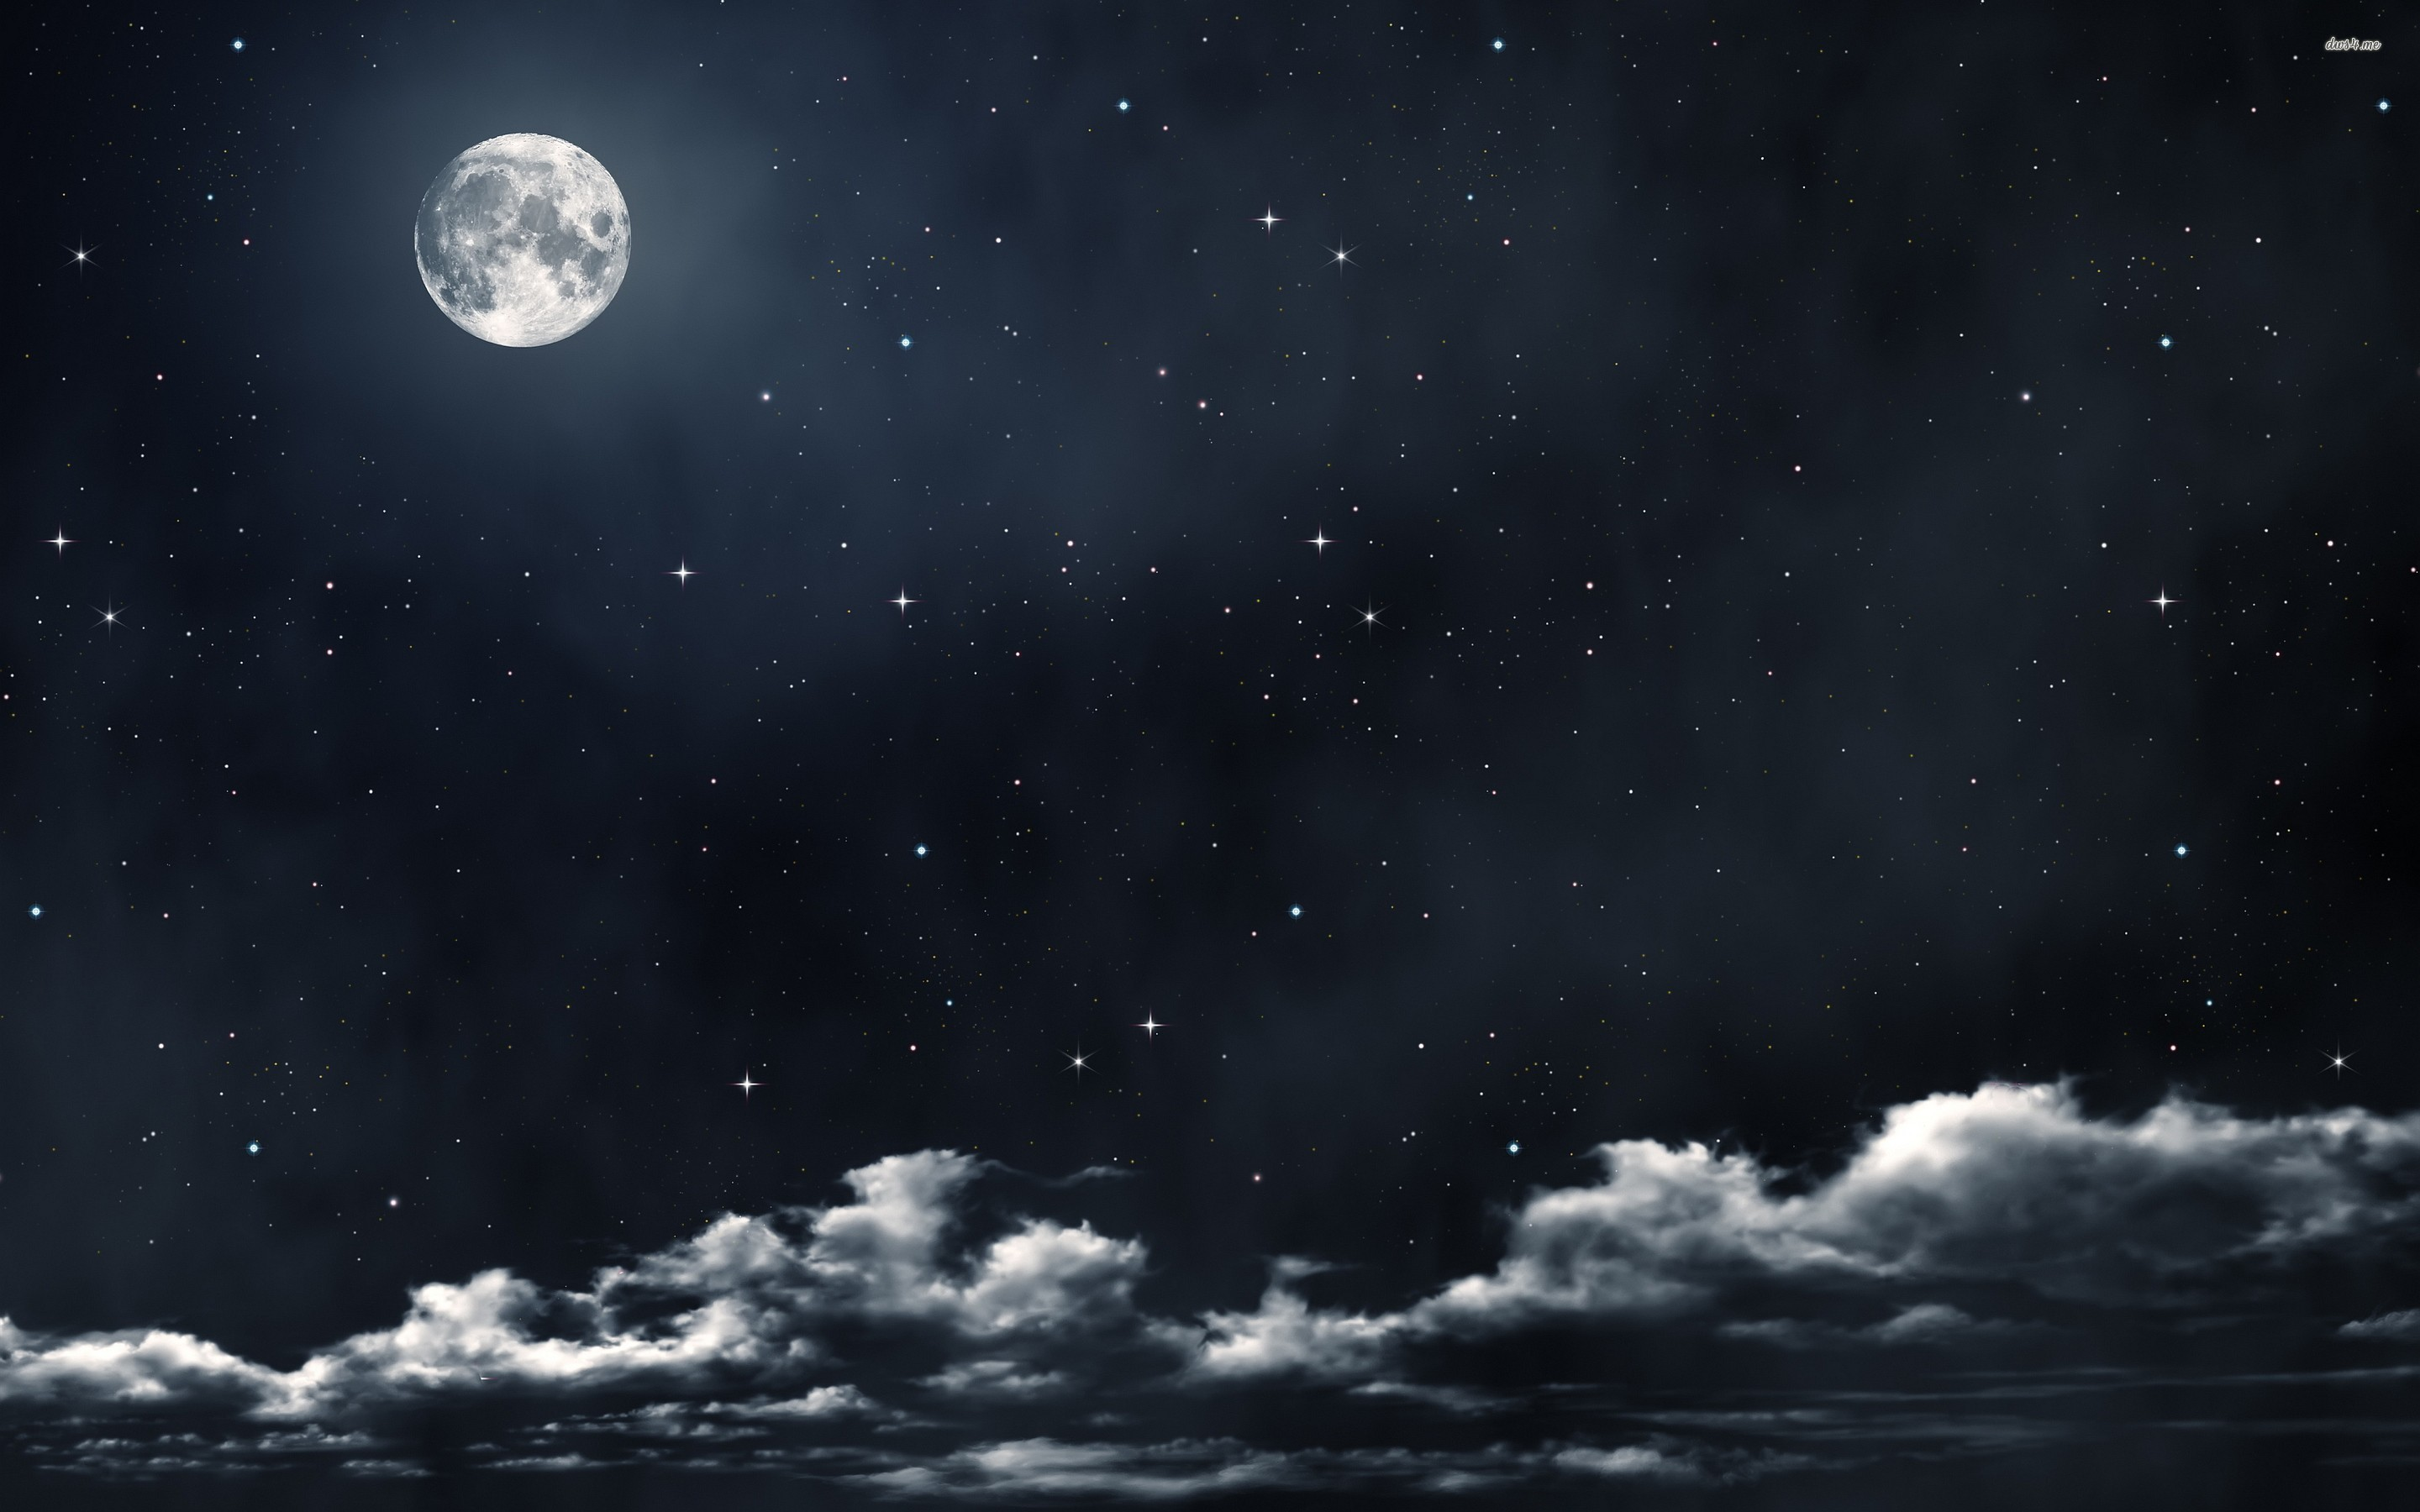 Pics of full moon and stars dowload Download 3d HD colour design